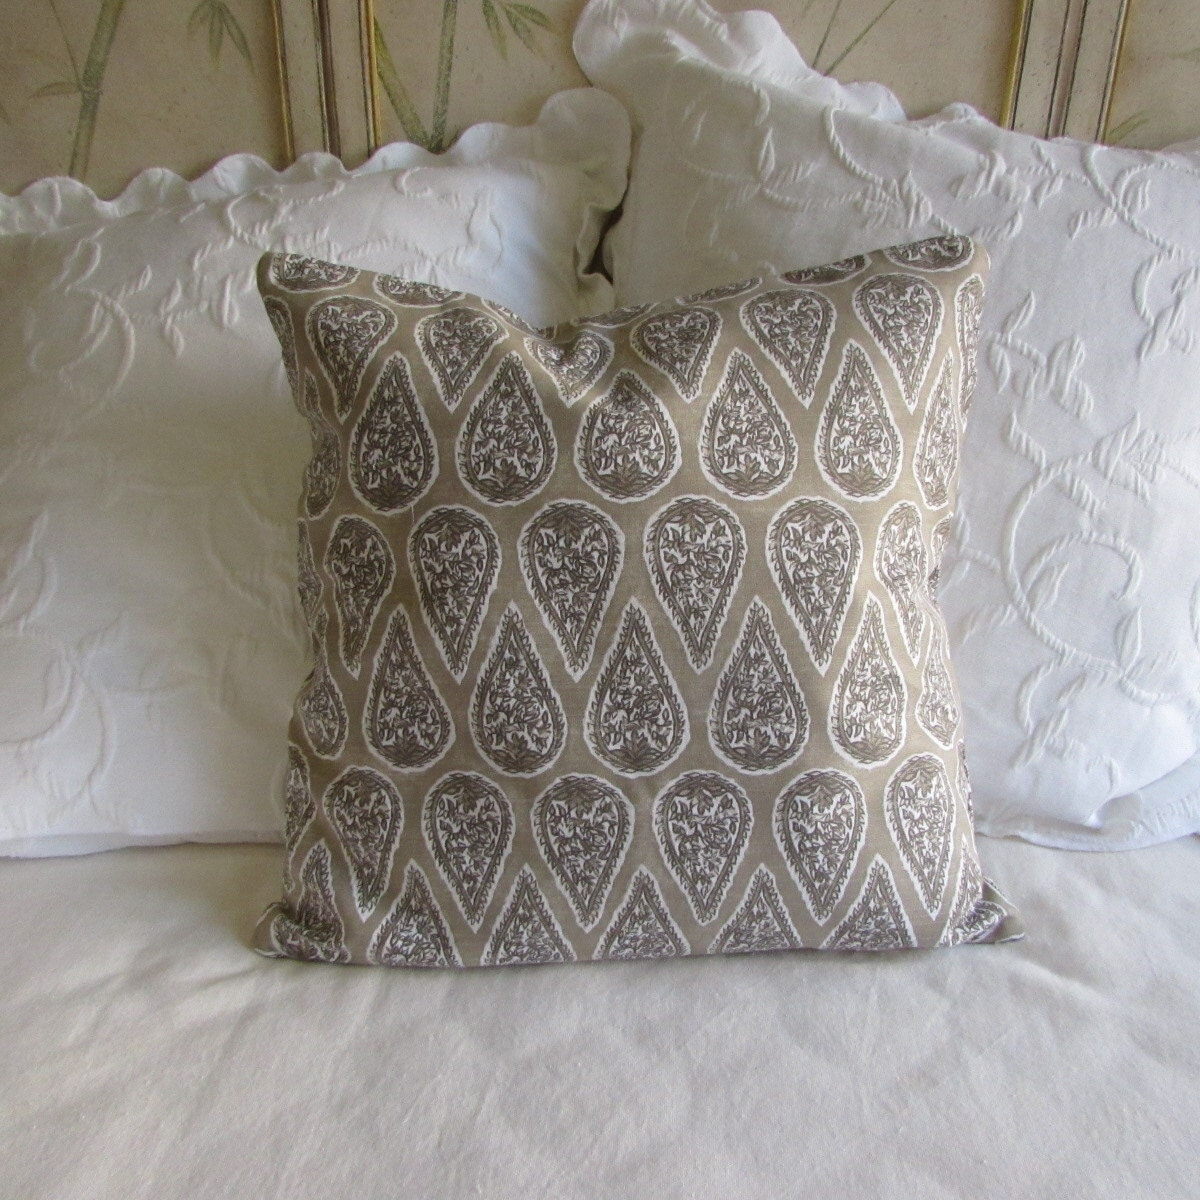 22x22 Decorative Pillows : Anya Bisque decorative Pillow Cover 18x18 20x20 22x22 24x24